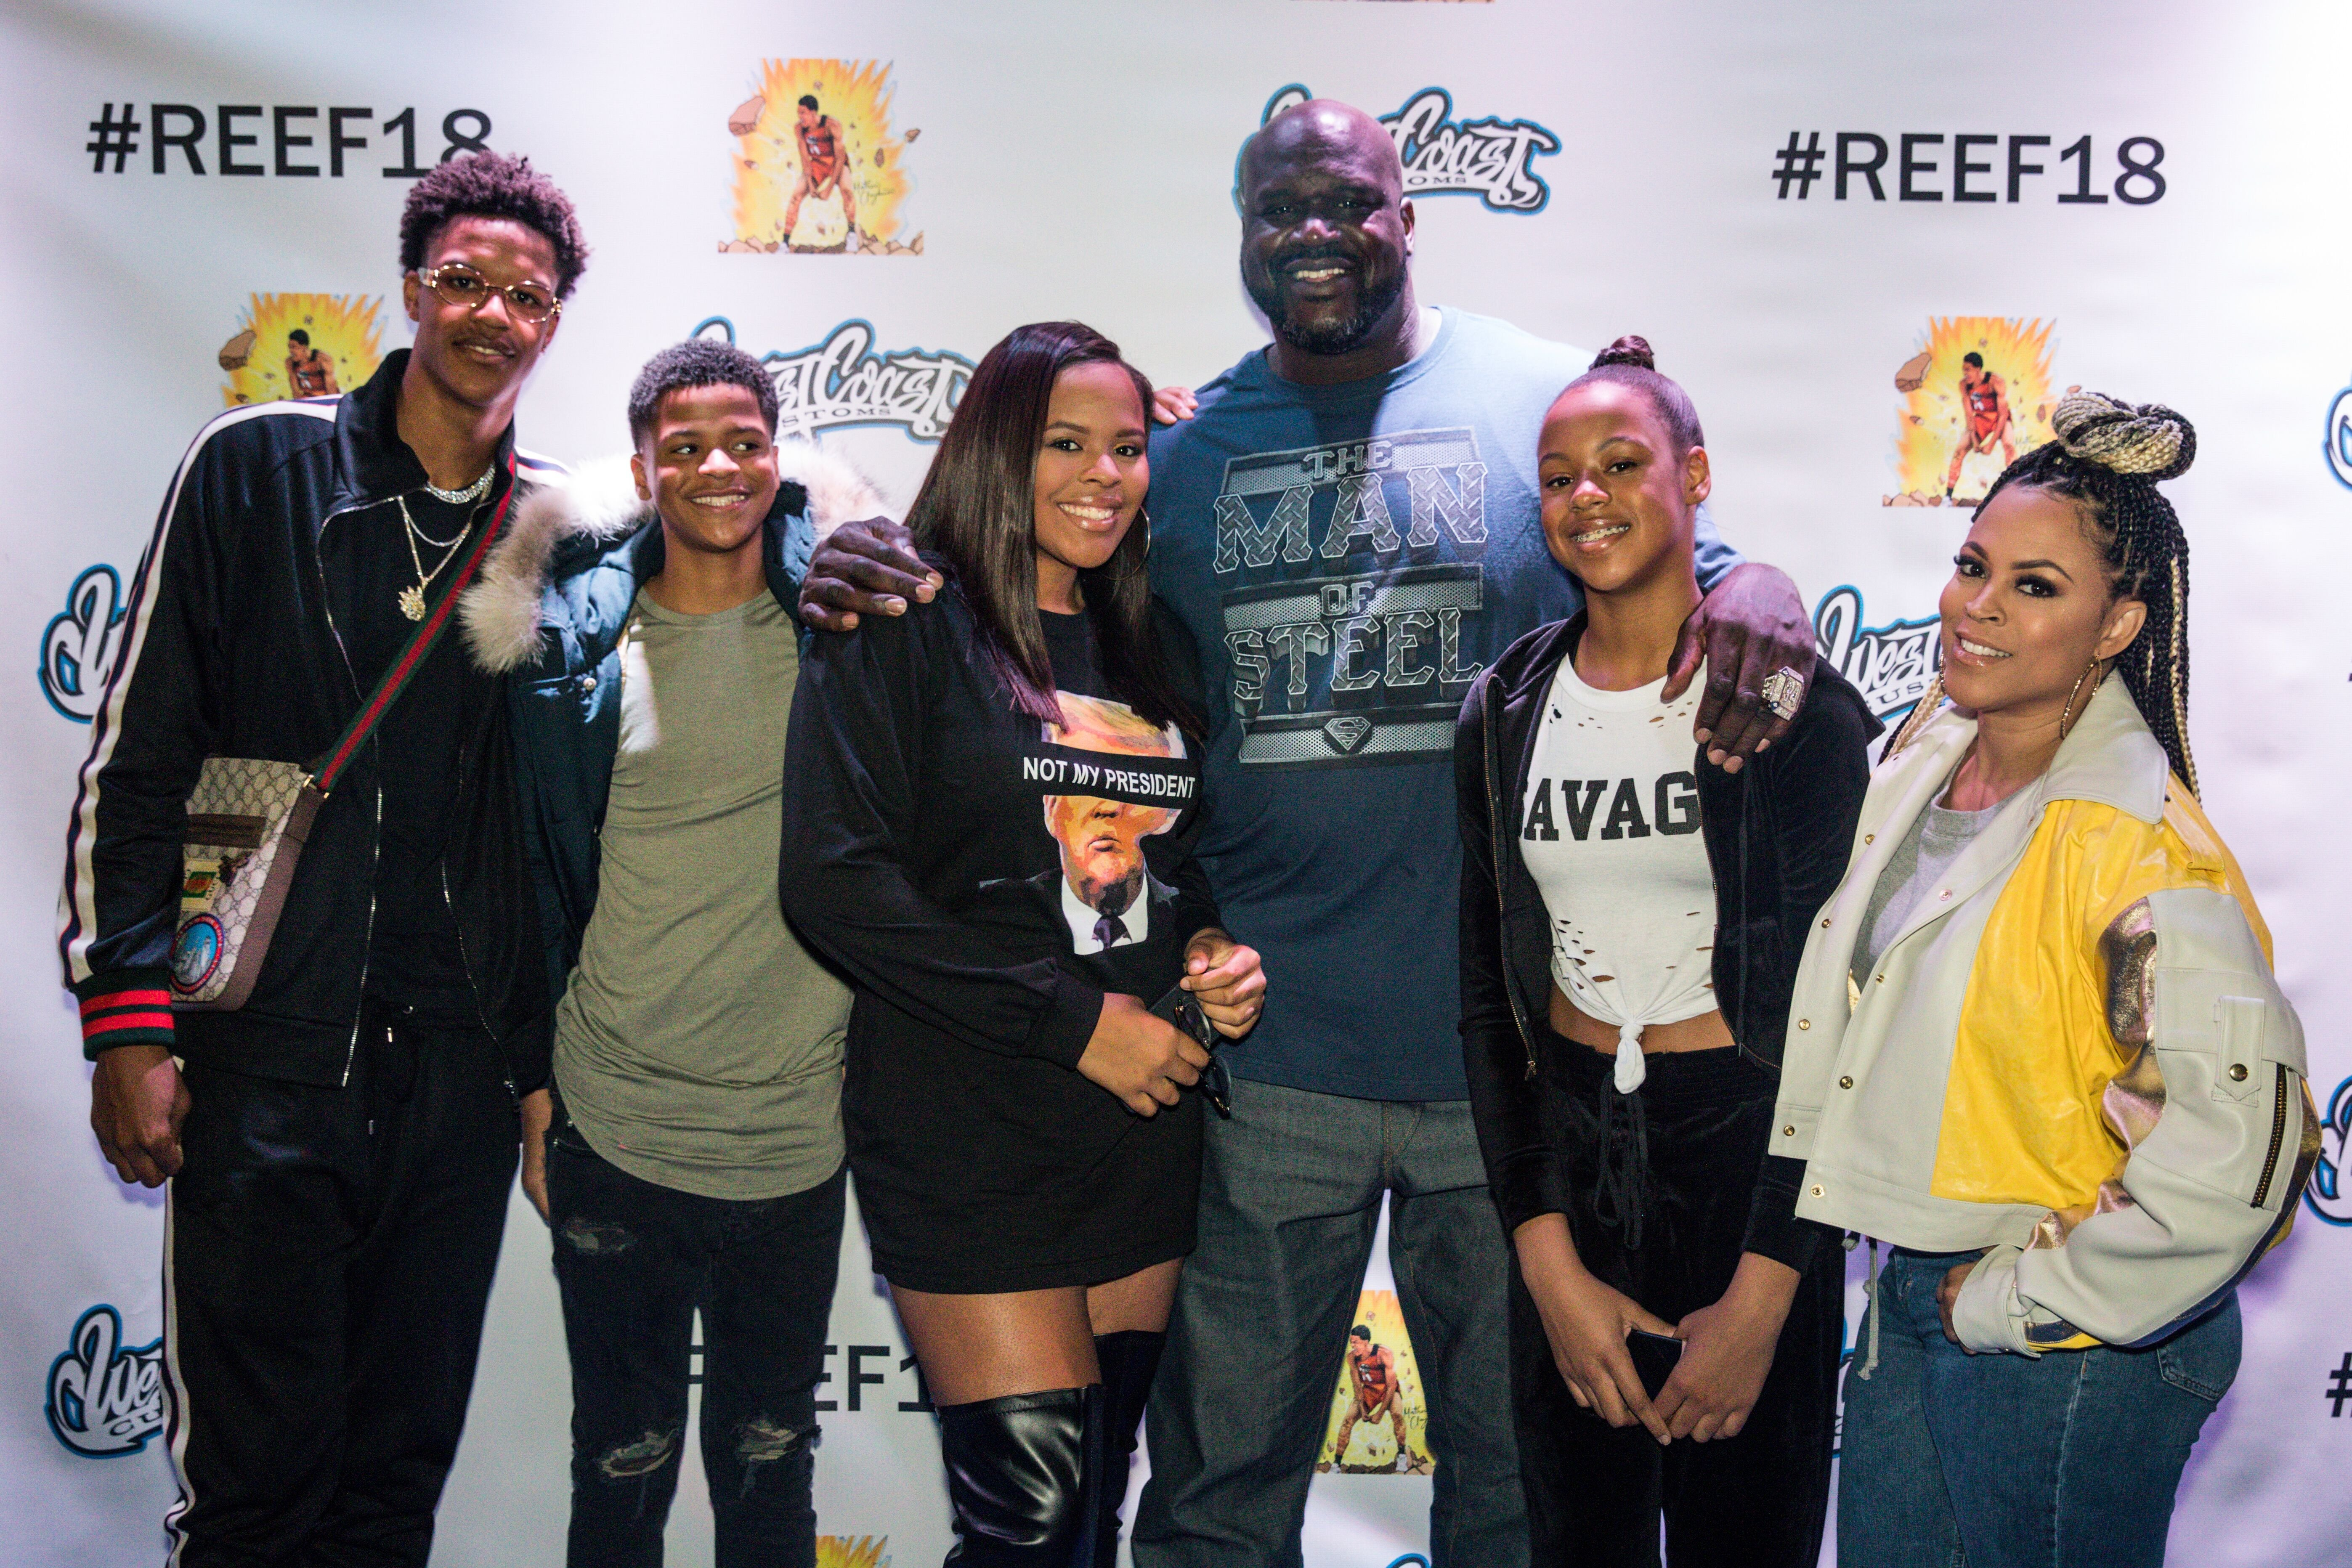 Shaquille O'Neal and his family on Shareef's 18th birthday in 2018 | Source: Getty Images